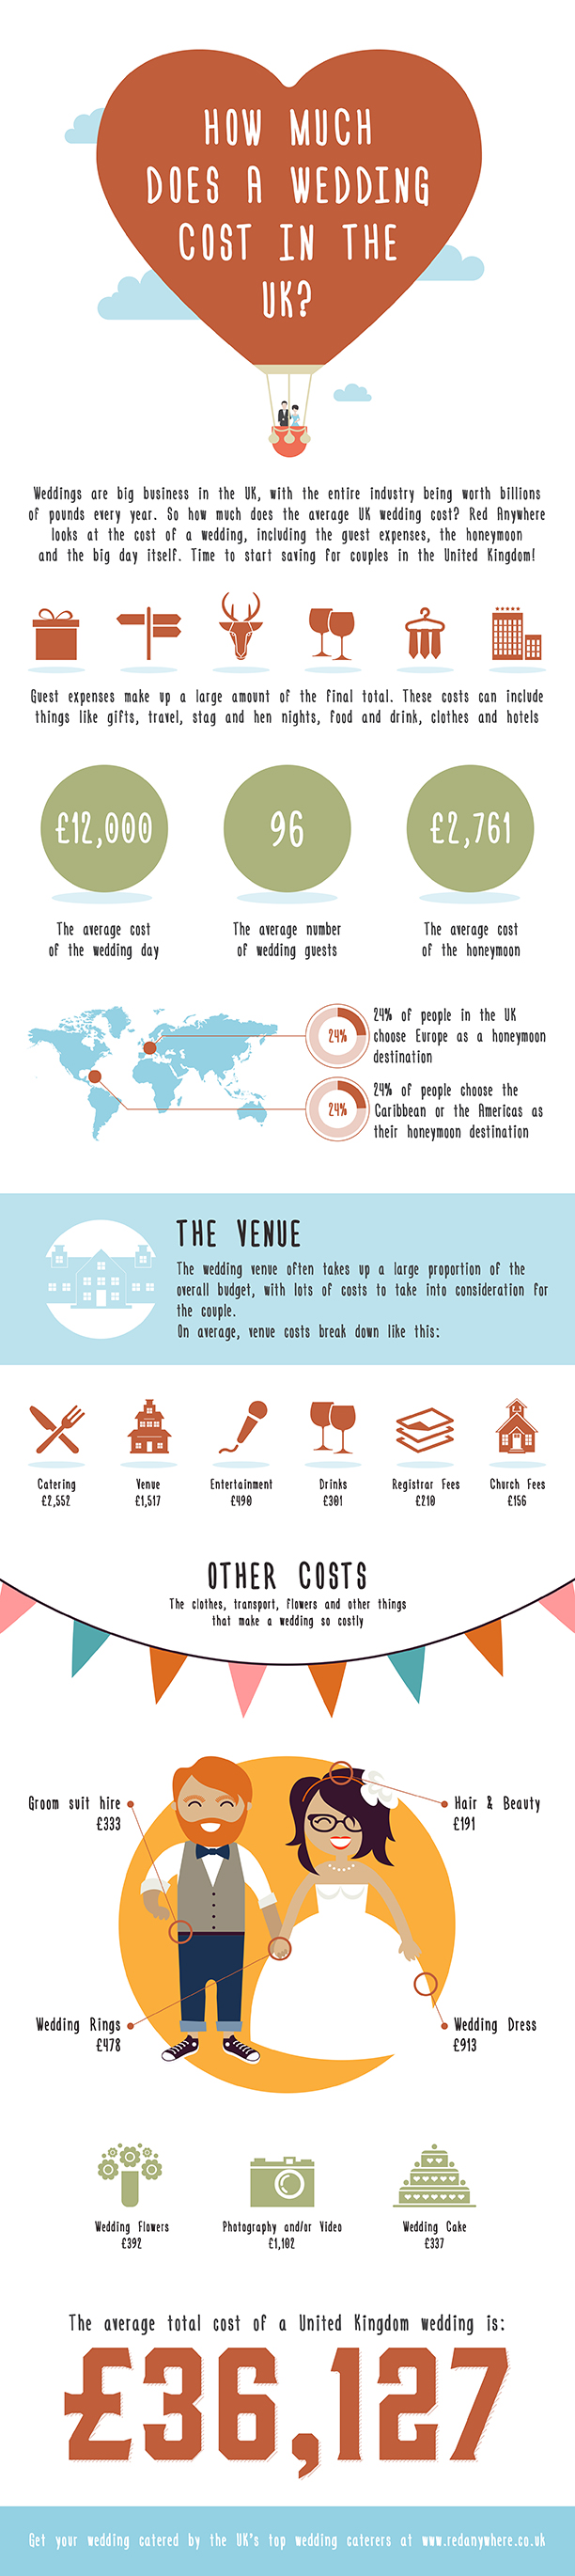 How Much Does A Wedding Cost In The UK? | Visual ly